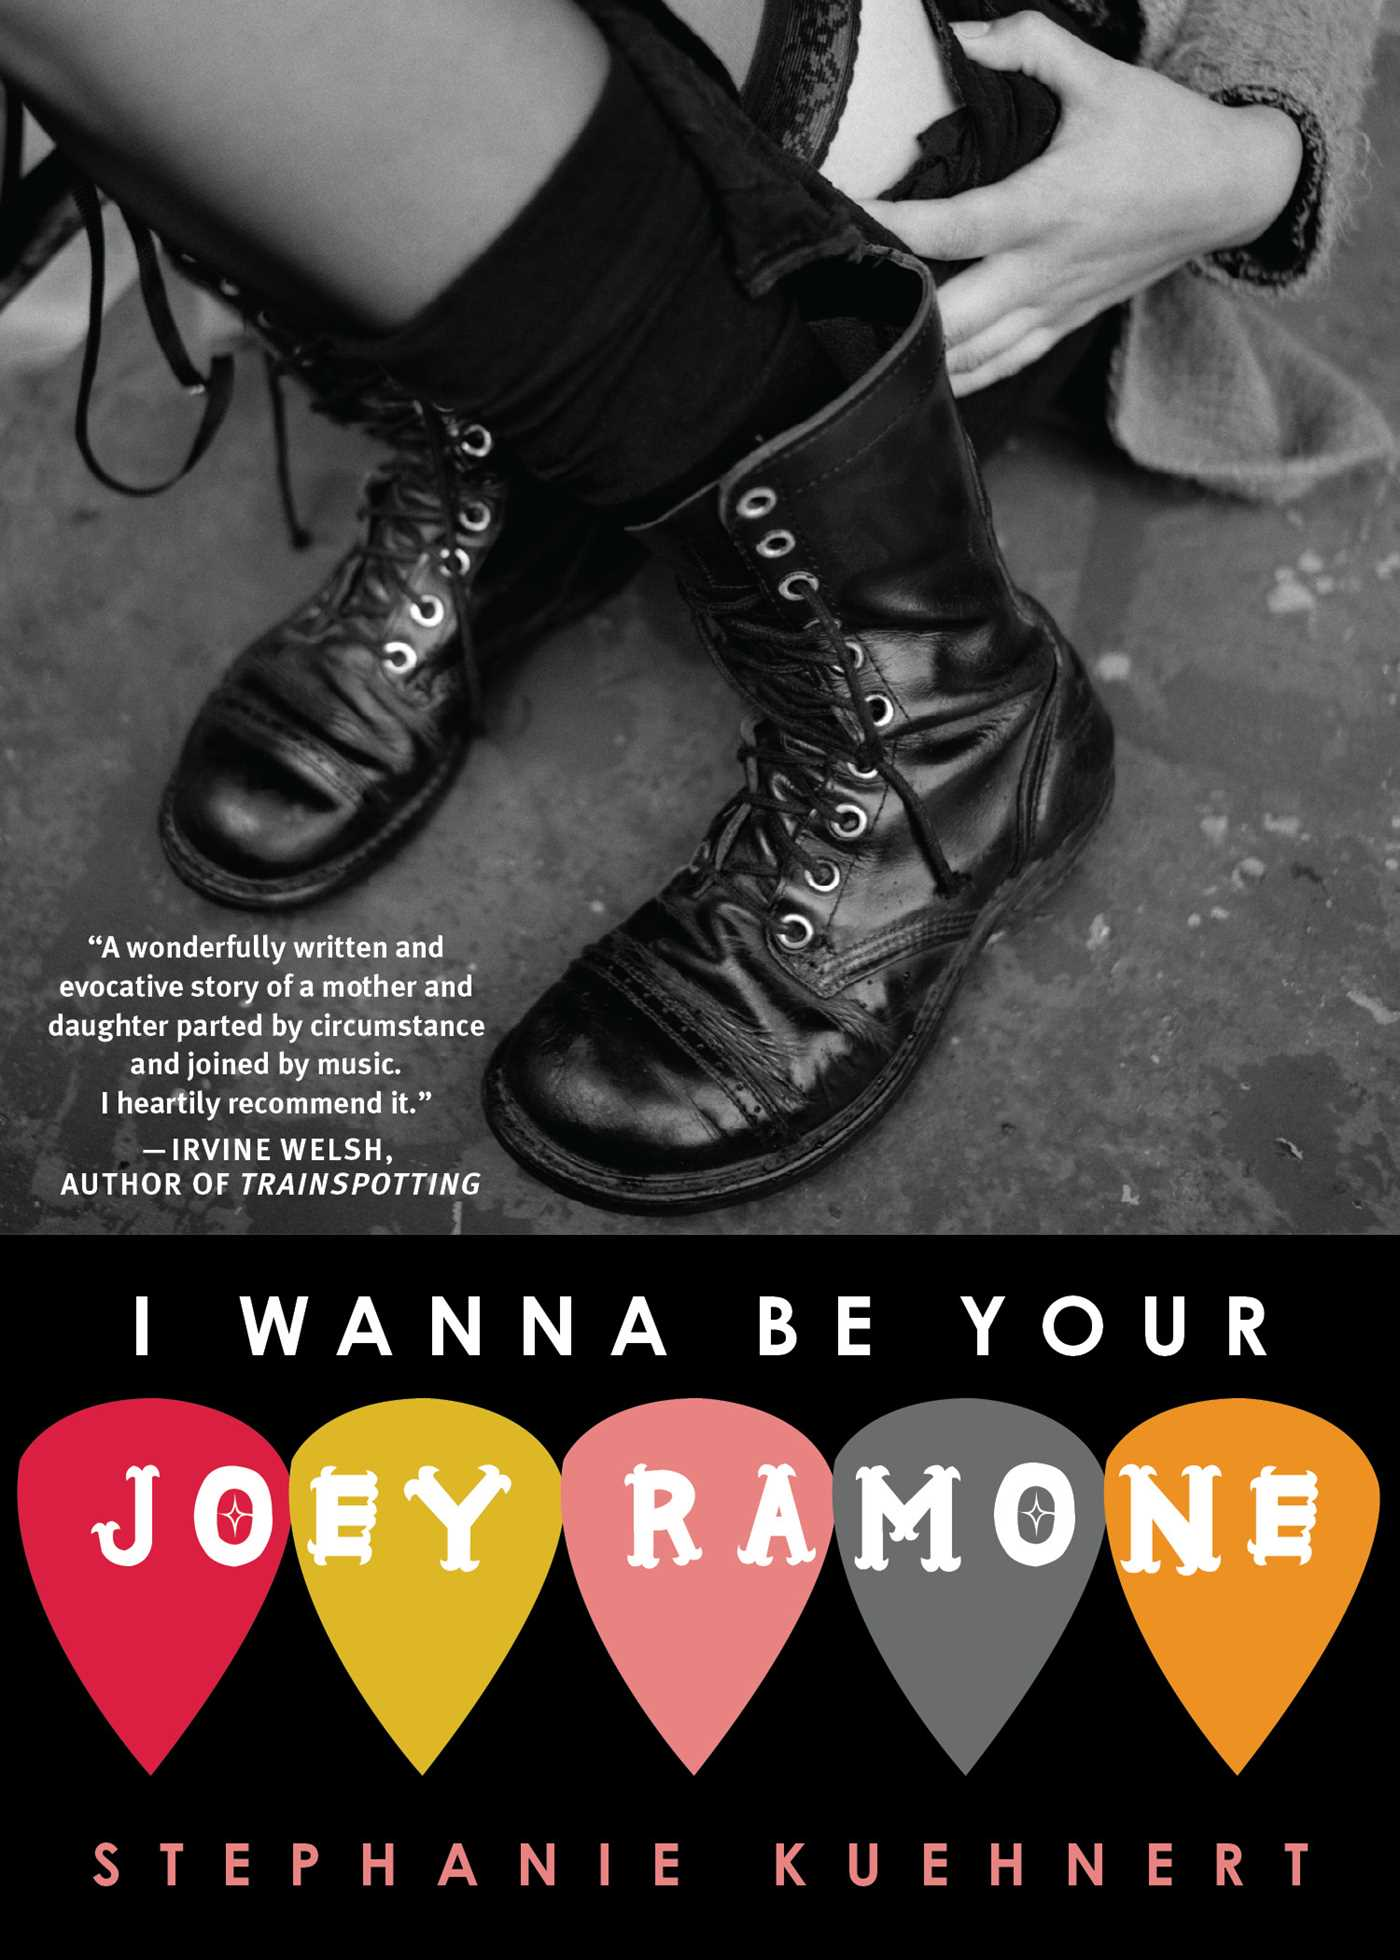 I wanna be your joey ramone 9781416562795 hr